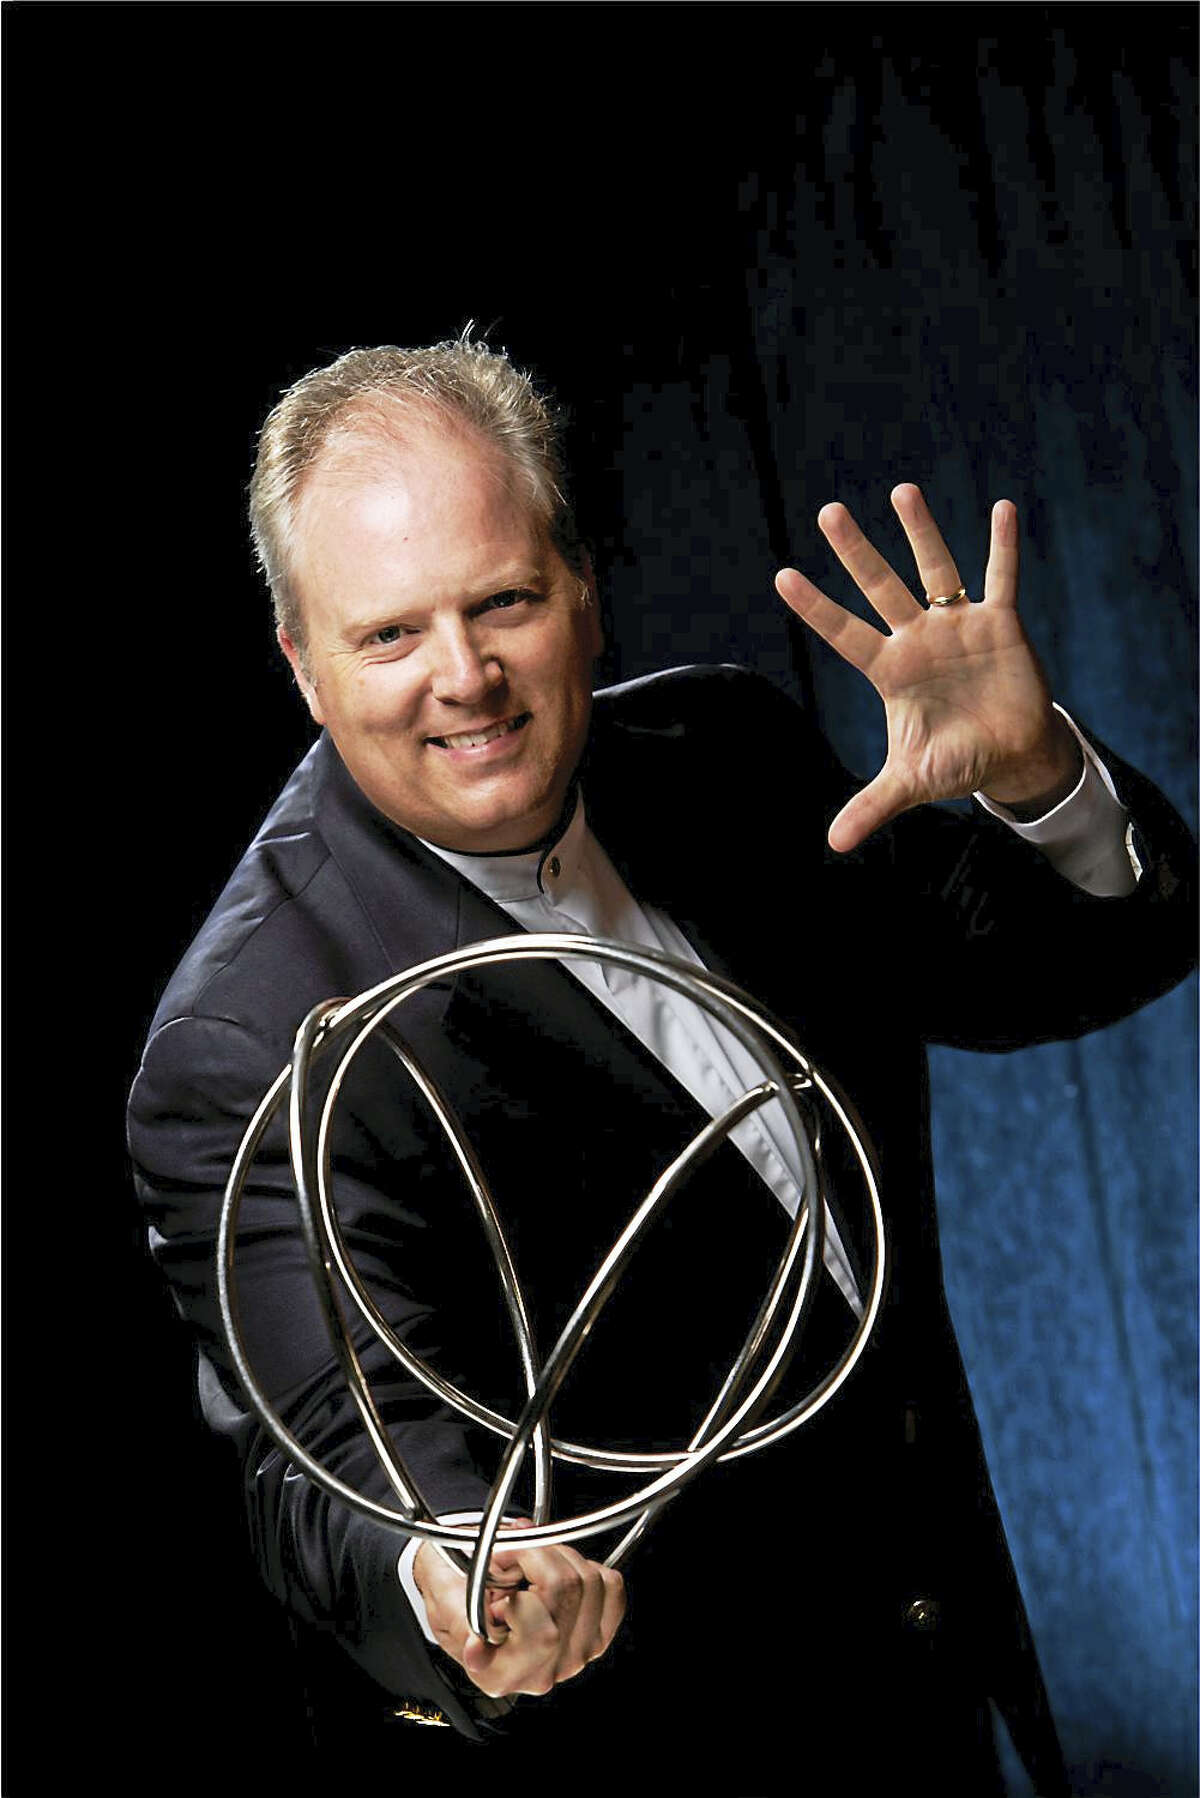 """Photo courtesy of David Reed-BrownMagician David Reed-Brown stars in """"The Magic Show"""" on April 15 at 7 p.m. at Essex Town Hall, sponsored by The First Congregational Church in Essex."""